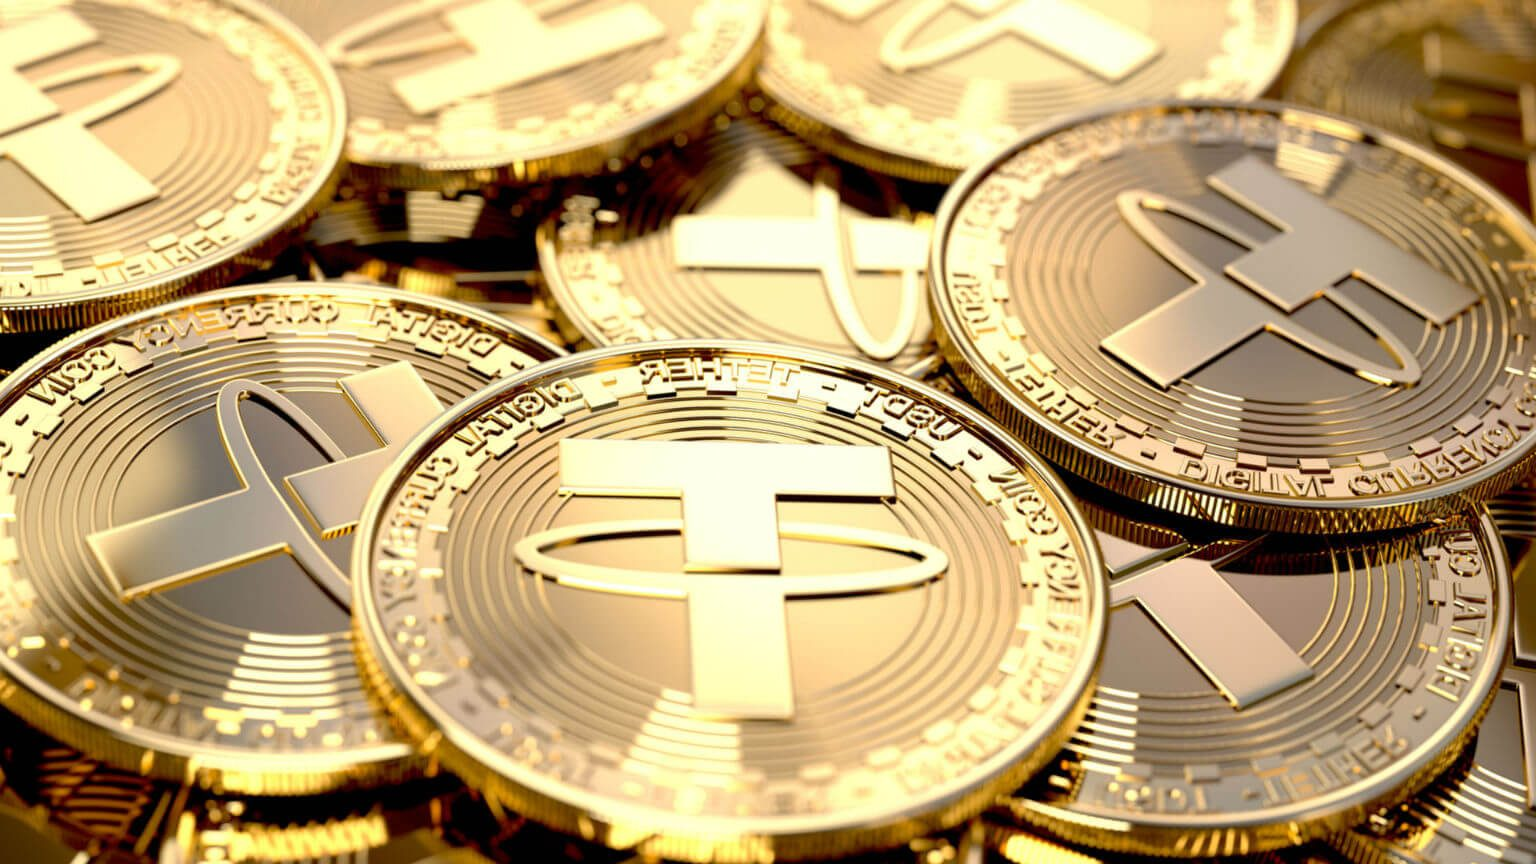 Tether coins